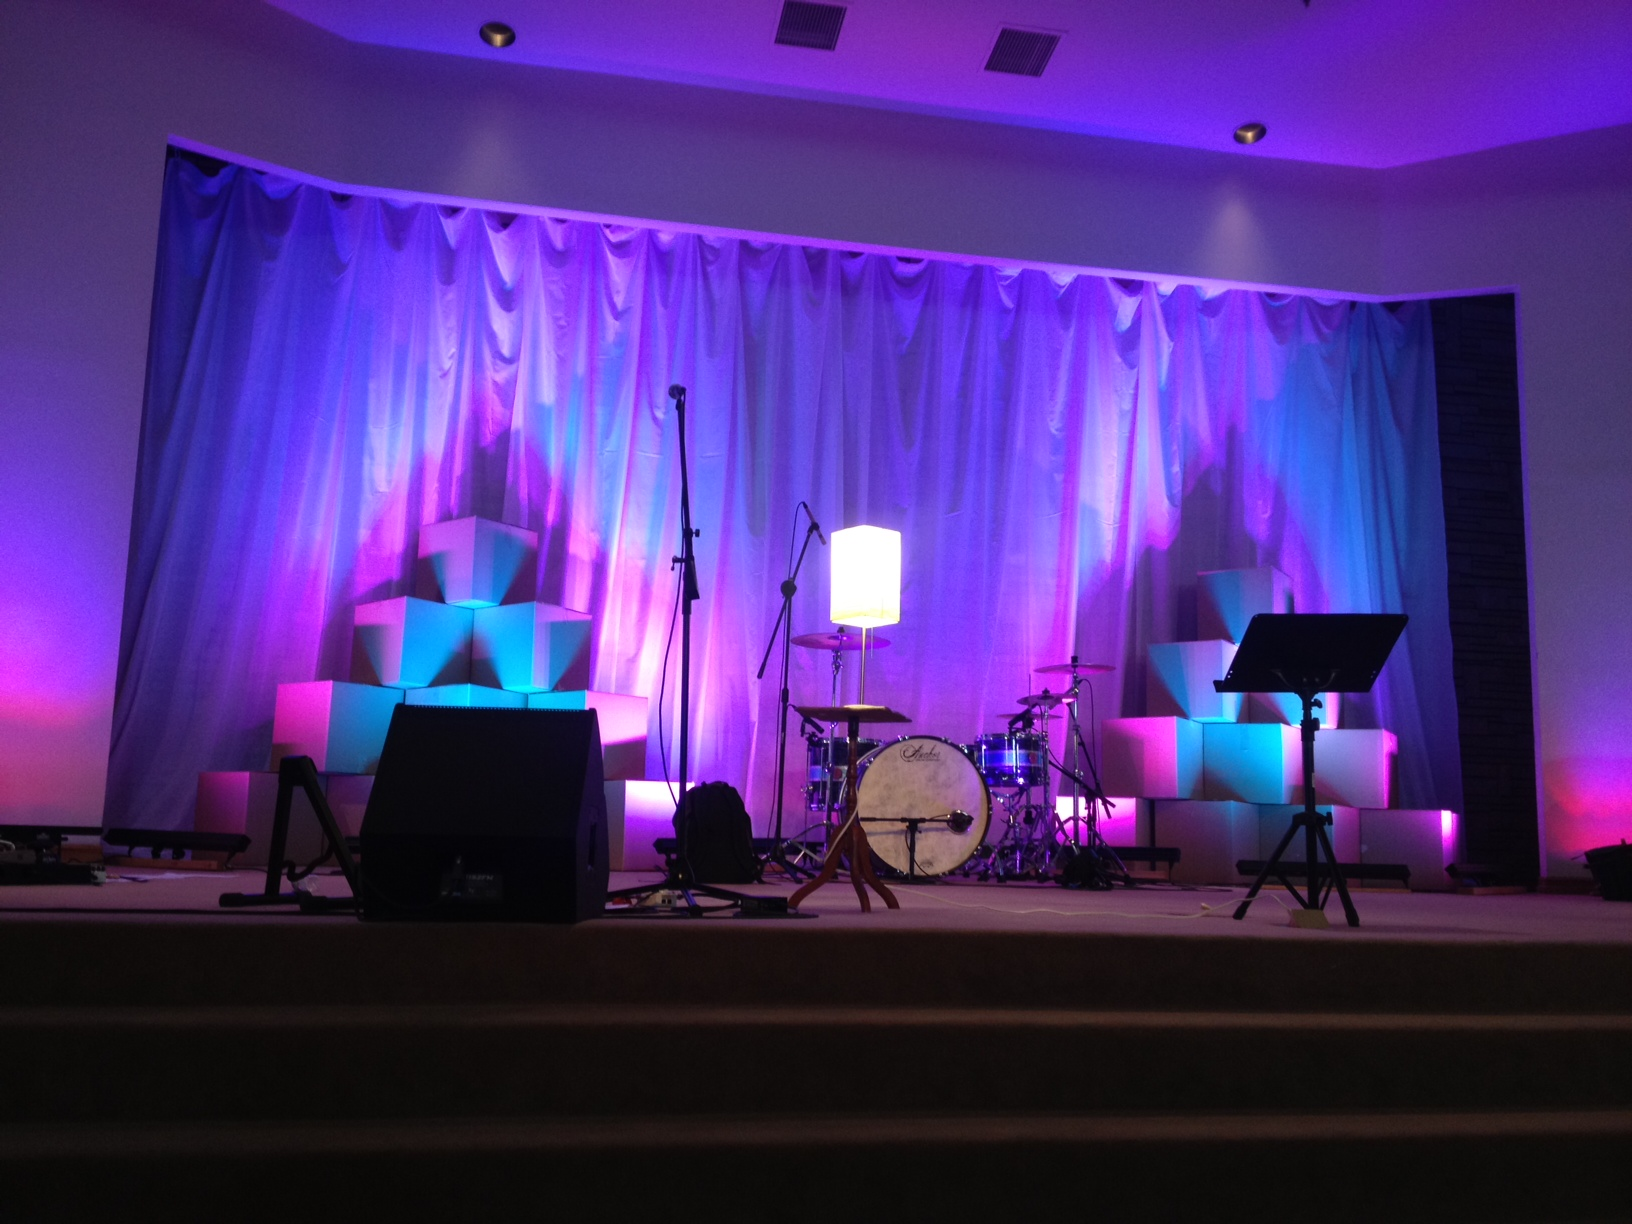 simple church stage design ideas free home design ideas images